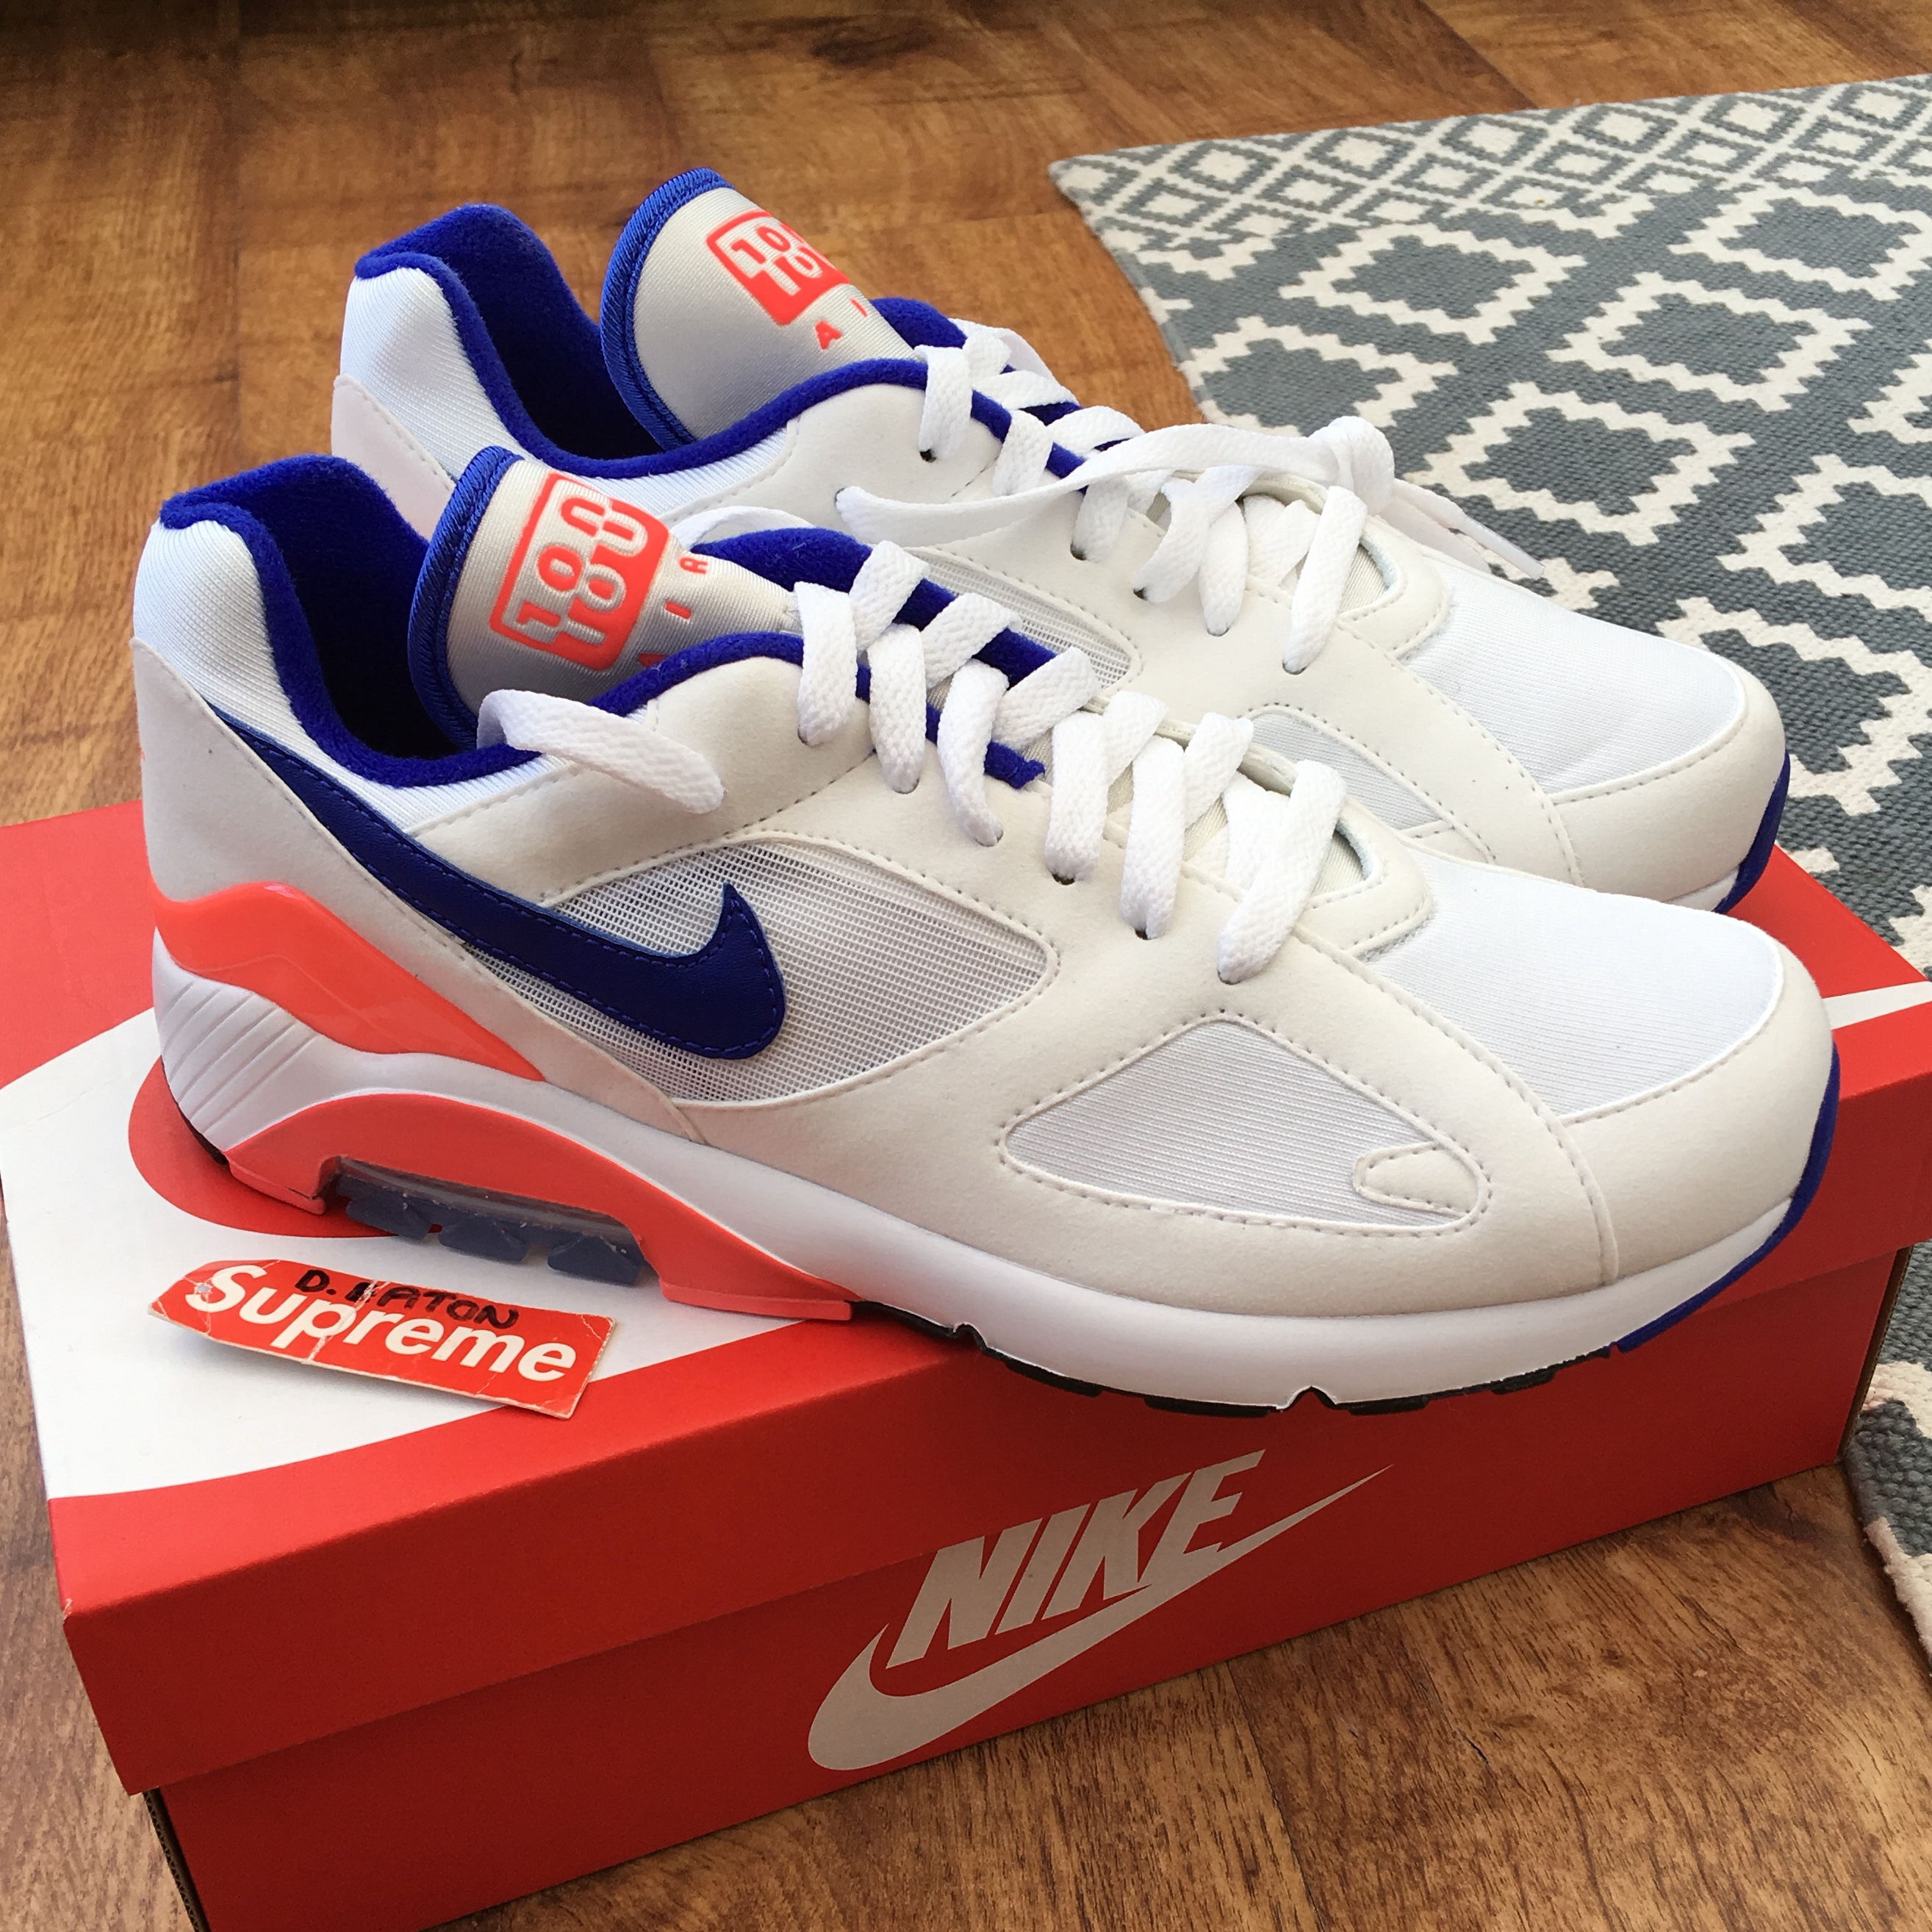 "NIKE AIR MAX 180 OG ""ULTRAMARINE"" UK6.5 NEW"